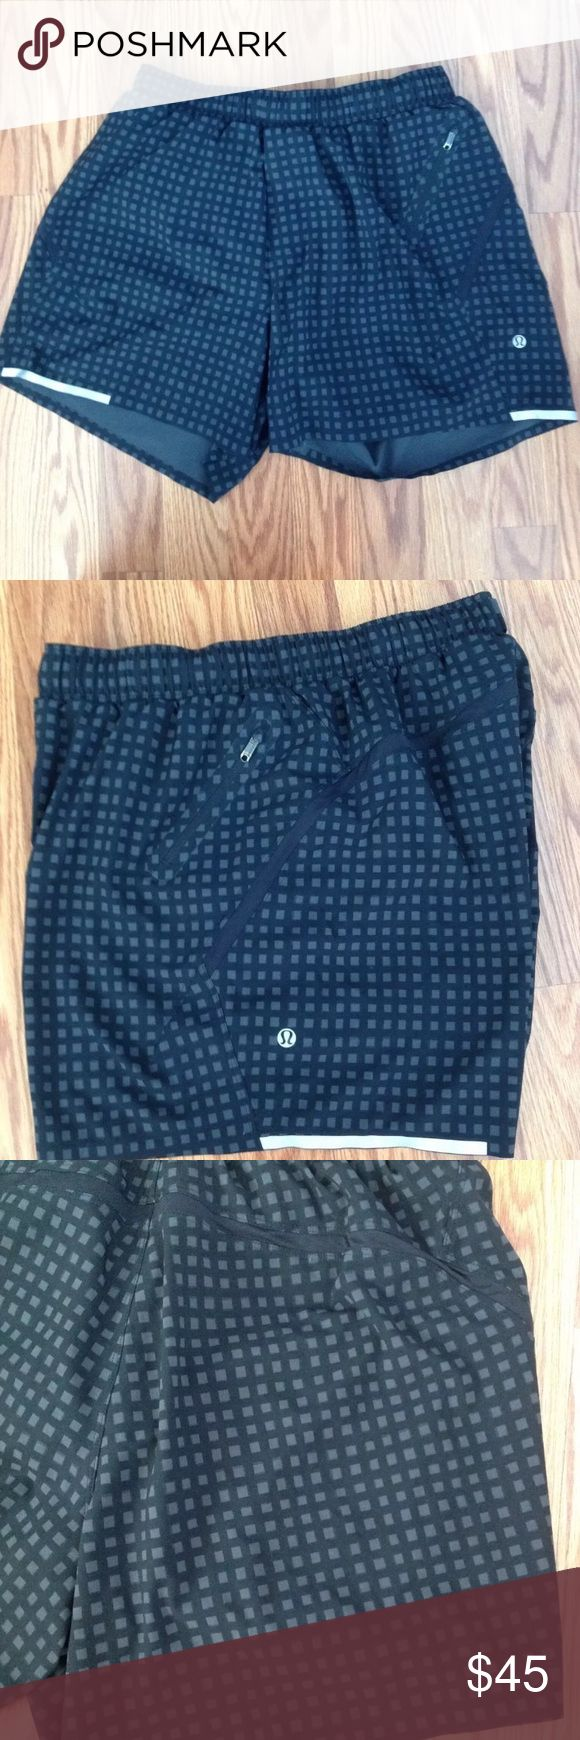 "Selling this Lululemon Medium Surge Shorts 5"" Black & Gray on Poshmark! My username is: wrd14. #shopmycloset #poshmark #fashion #shopping #style #forsale #lululemon athletica #Other"